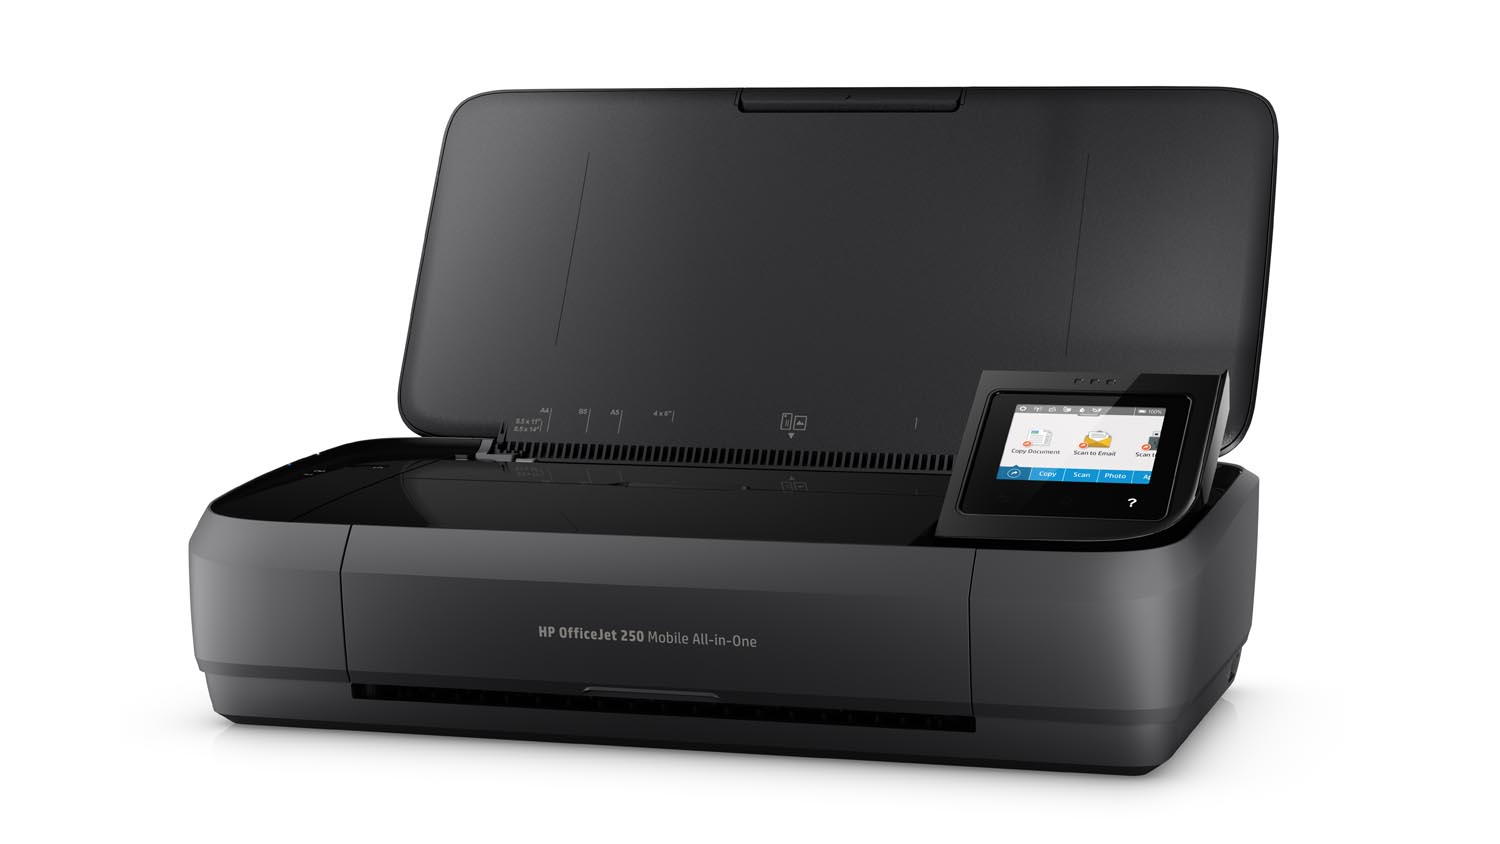 hp officejet 250 review the best portable multi function printer